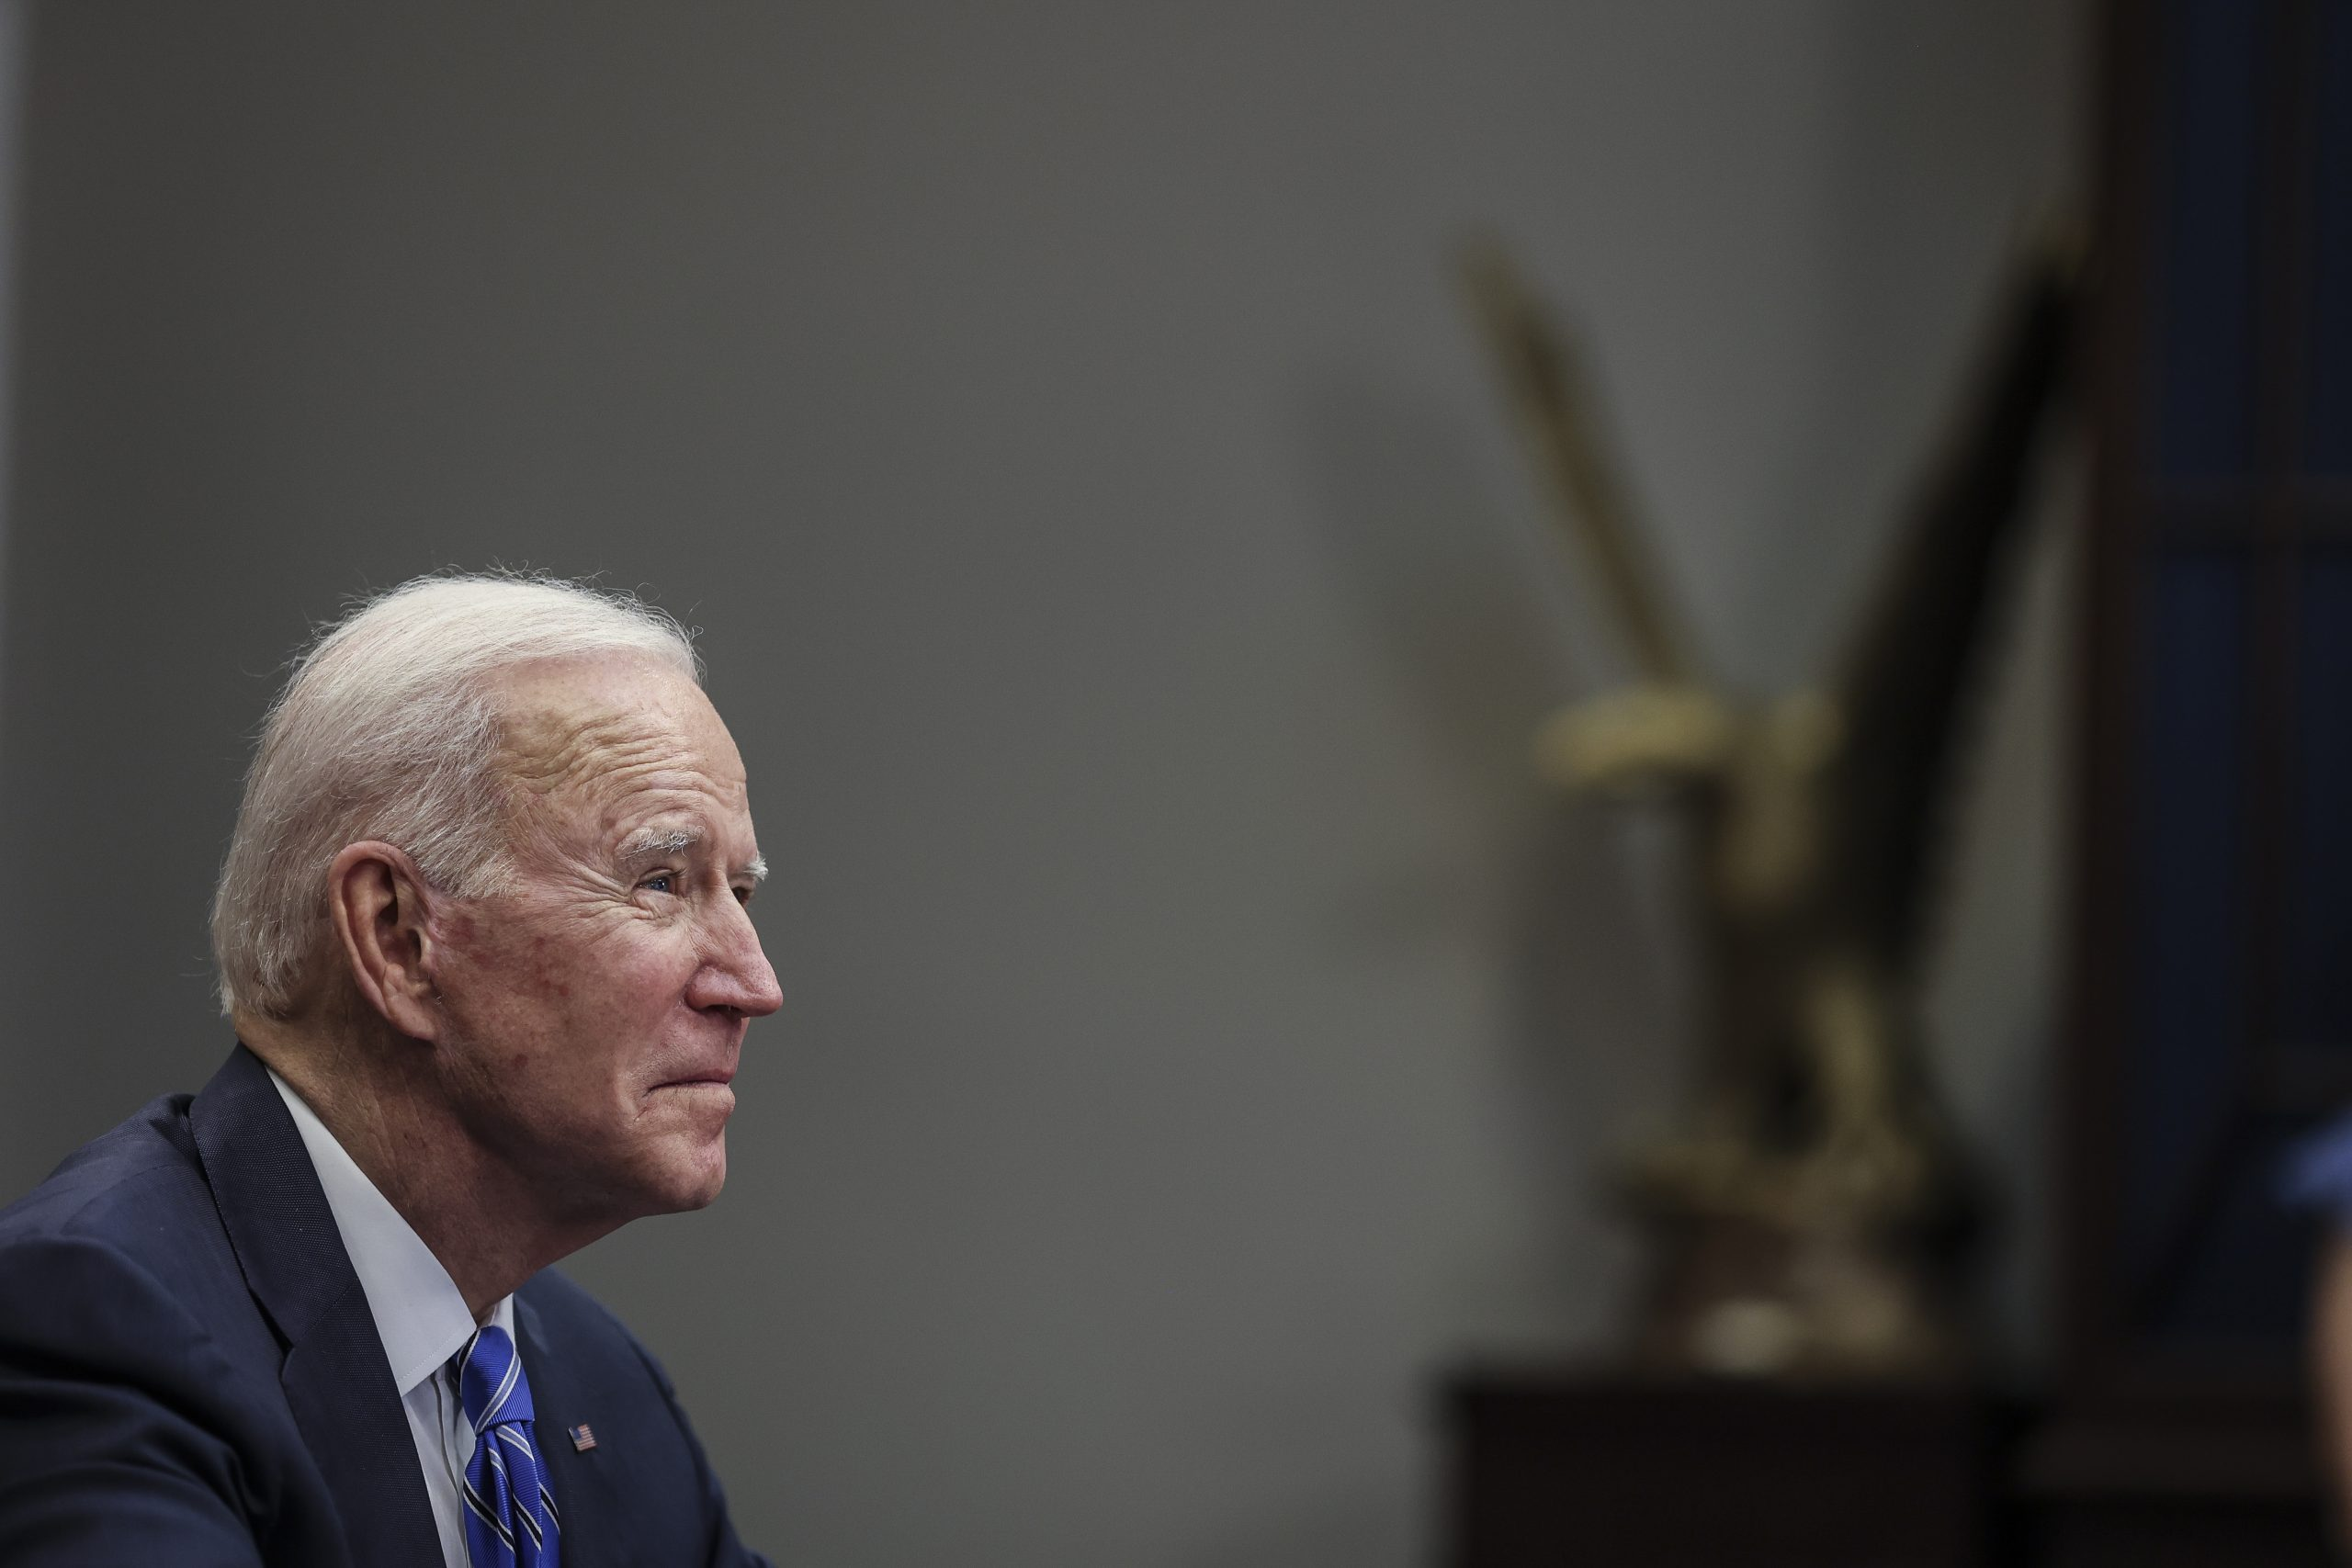 Does Biden Need Much less War or Faithful War With More Principles?